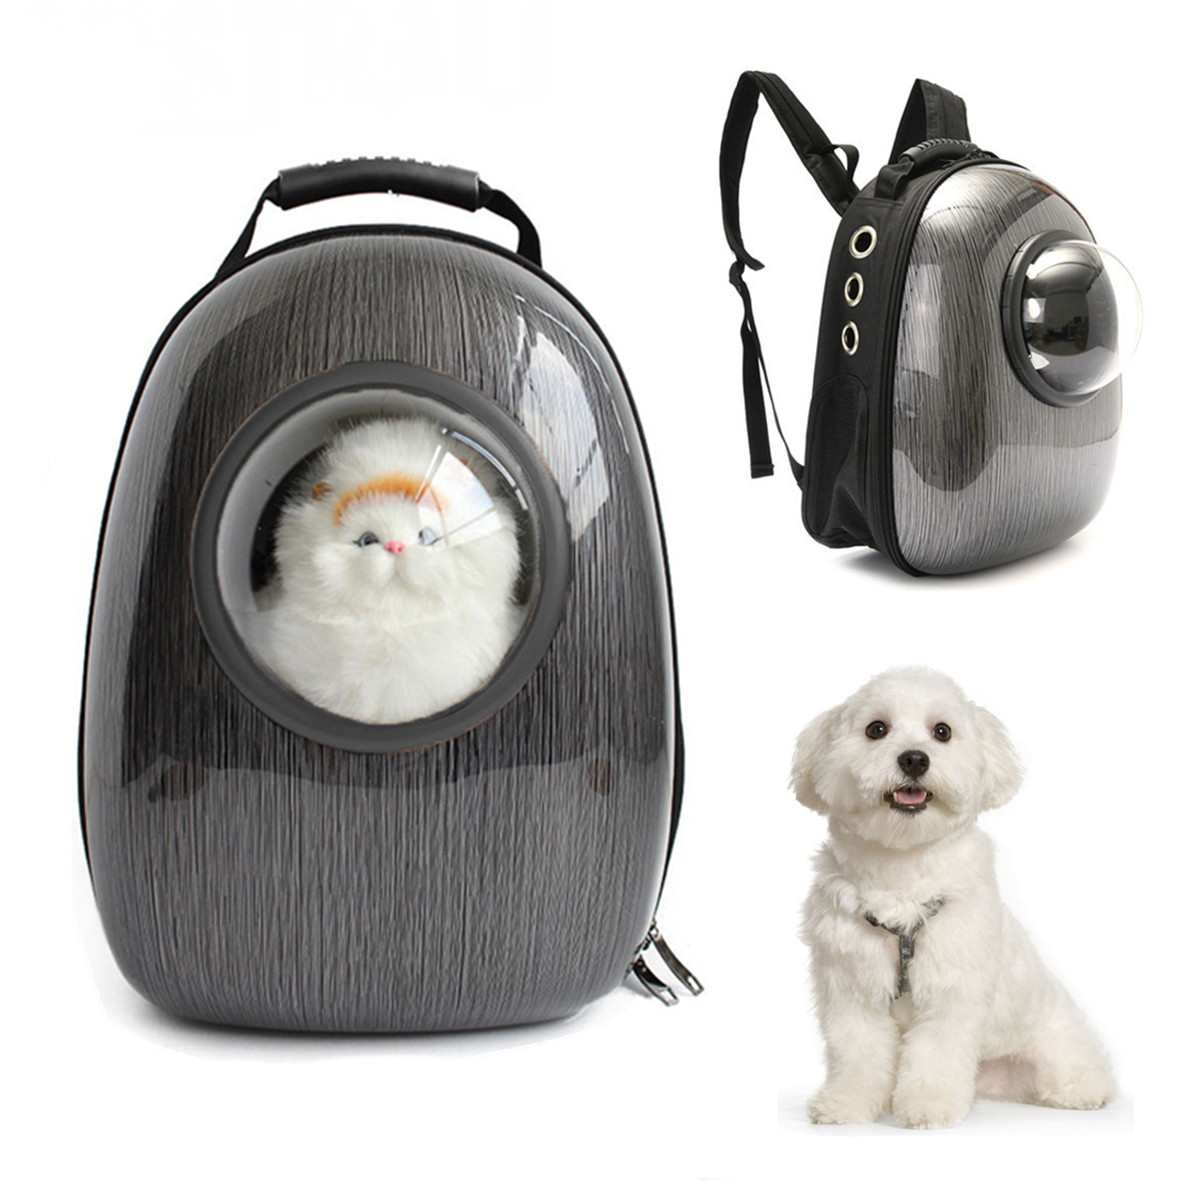 Dog Puppy Cat Pet Travel Outdoor Carrier Shoulder Bags Backpack Breathable Shoulder Bag Mobile Bed Winter House Small Medium